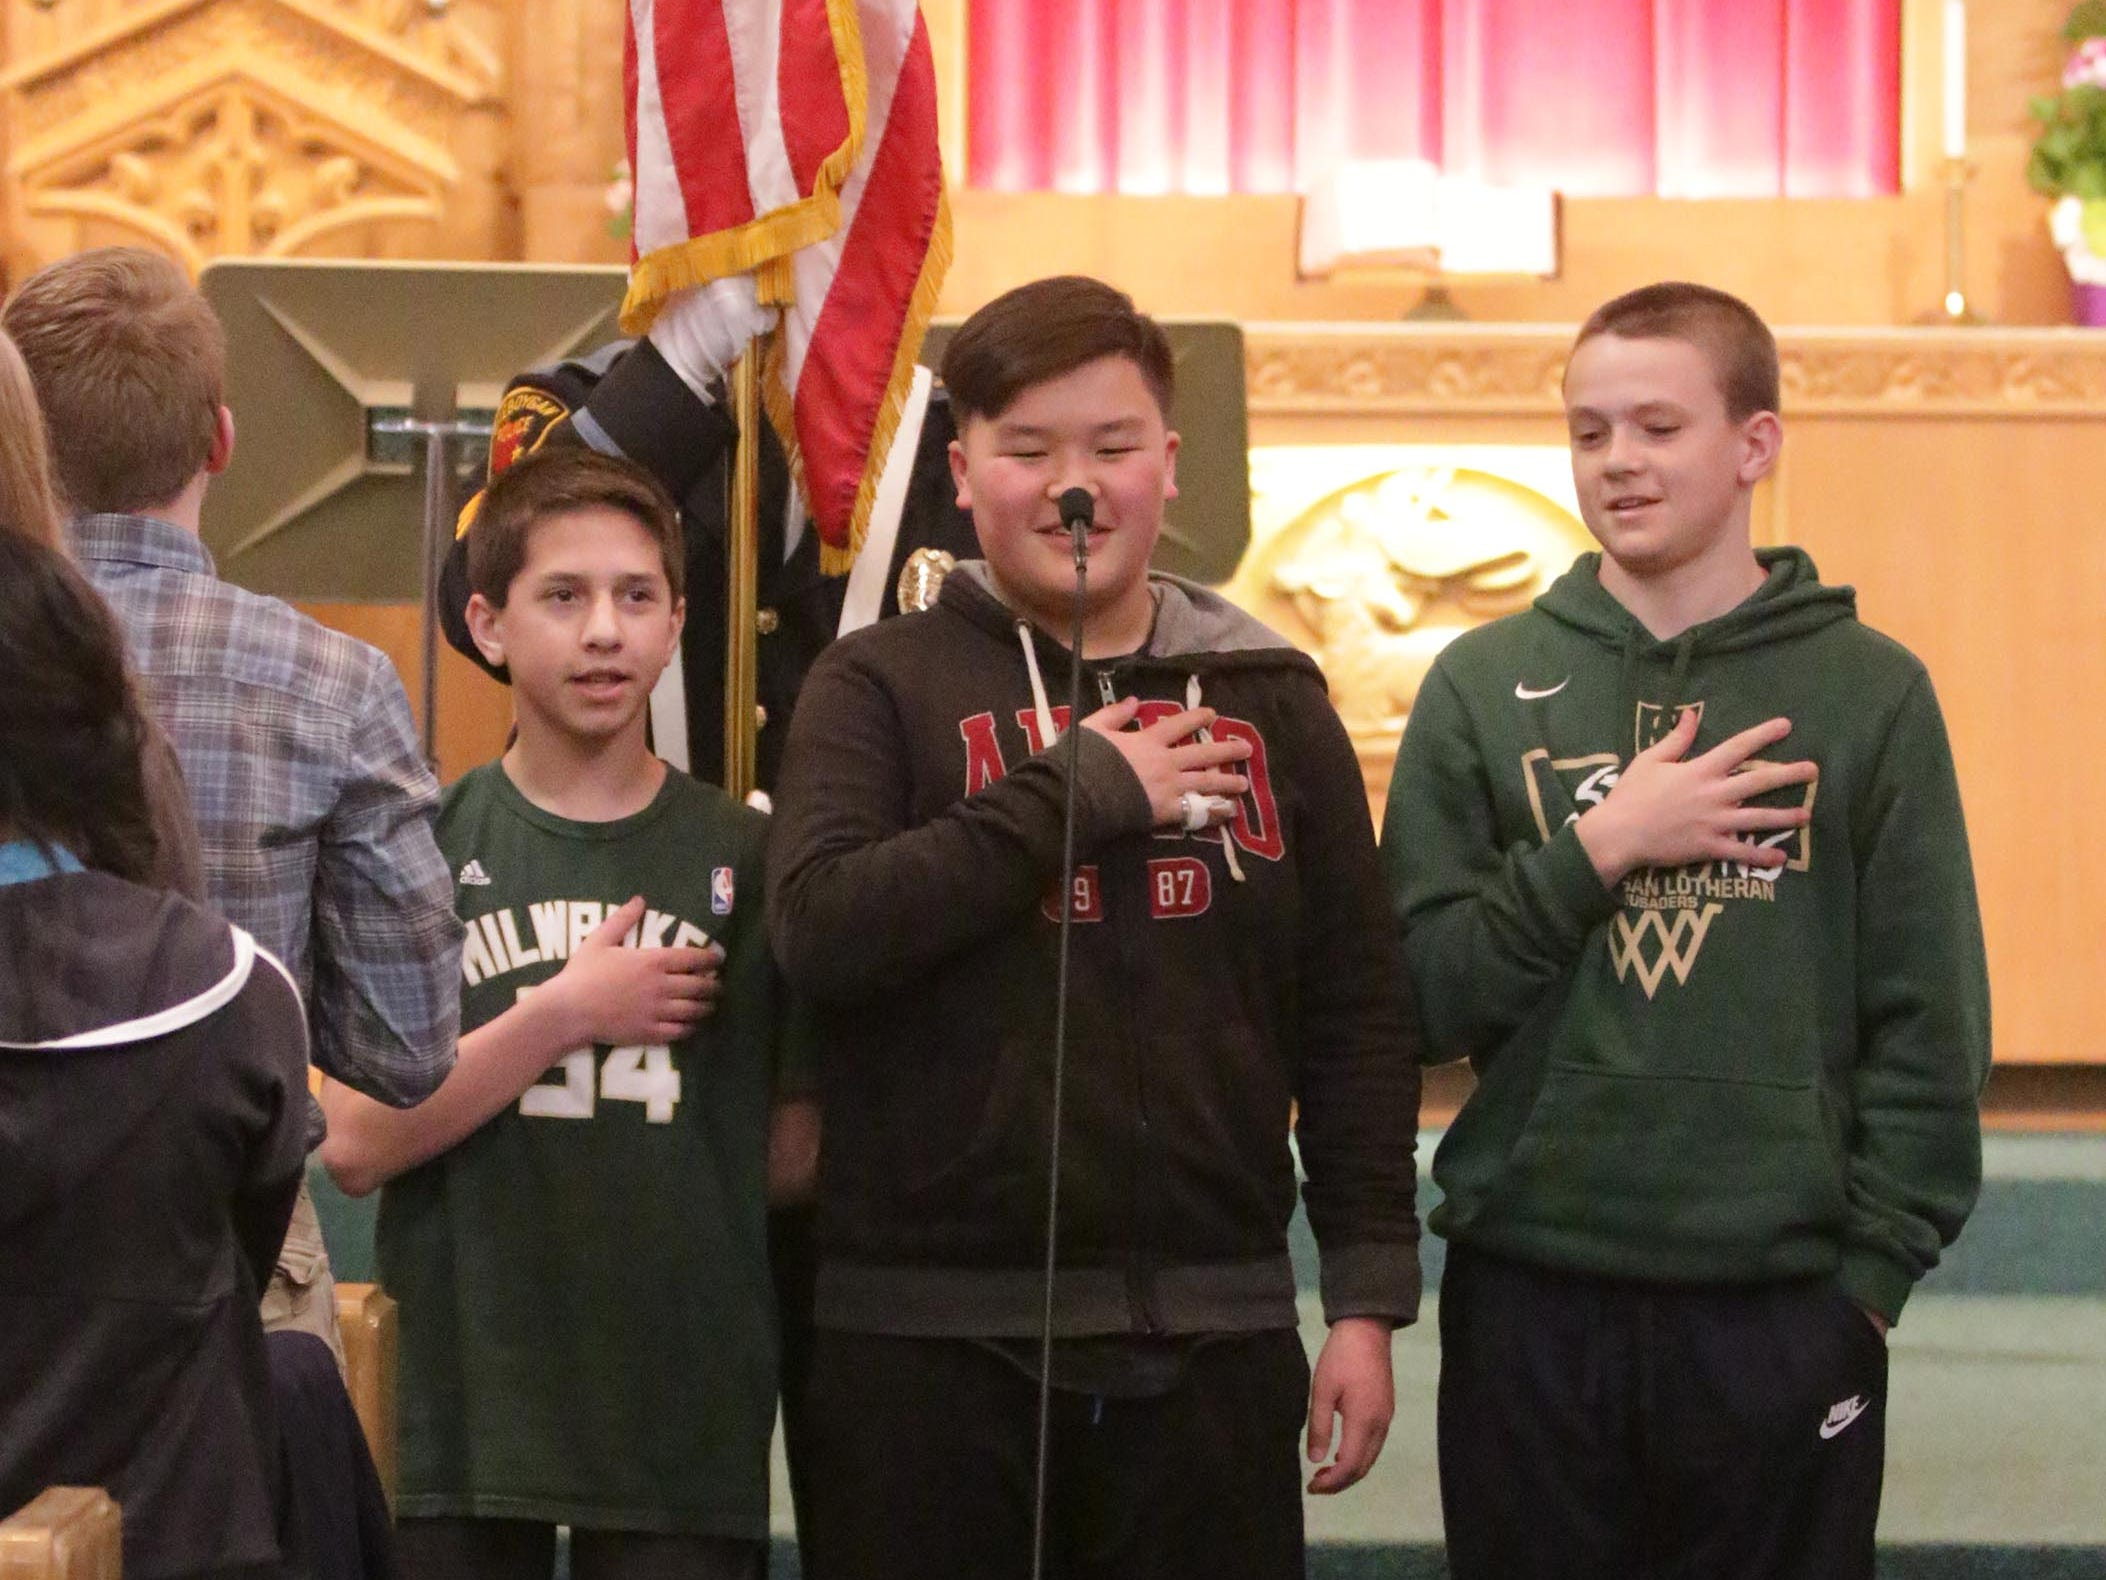 Students from Sheboygan Christian School cites the Pledge of Allegiance during the National Day of Prayer service, Thursday, May 2, 2019, at Fountain Park Church, in Sheboygan, Wis.